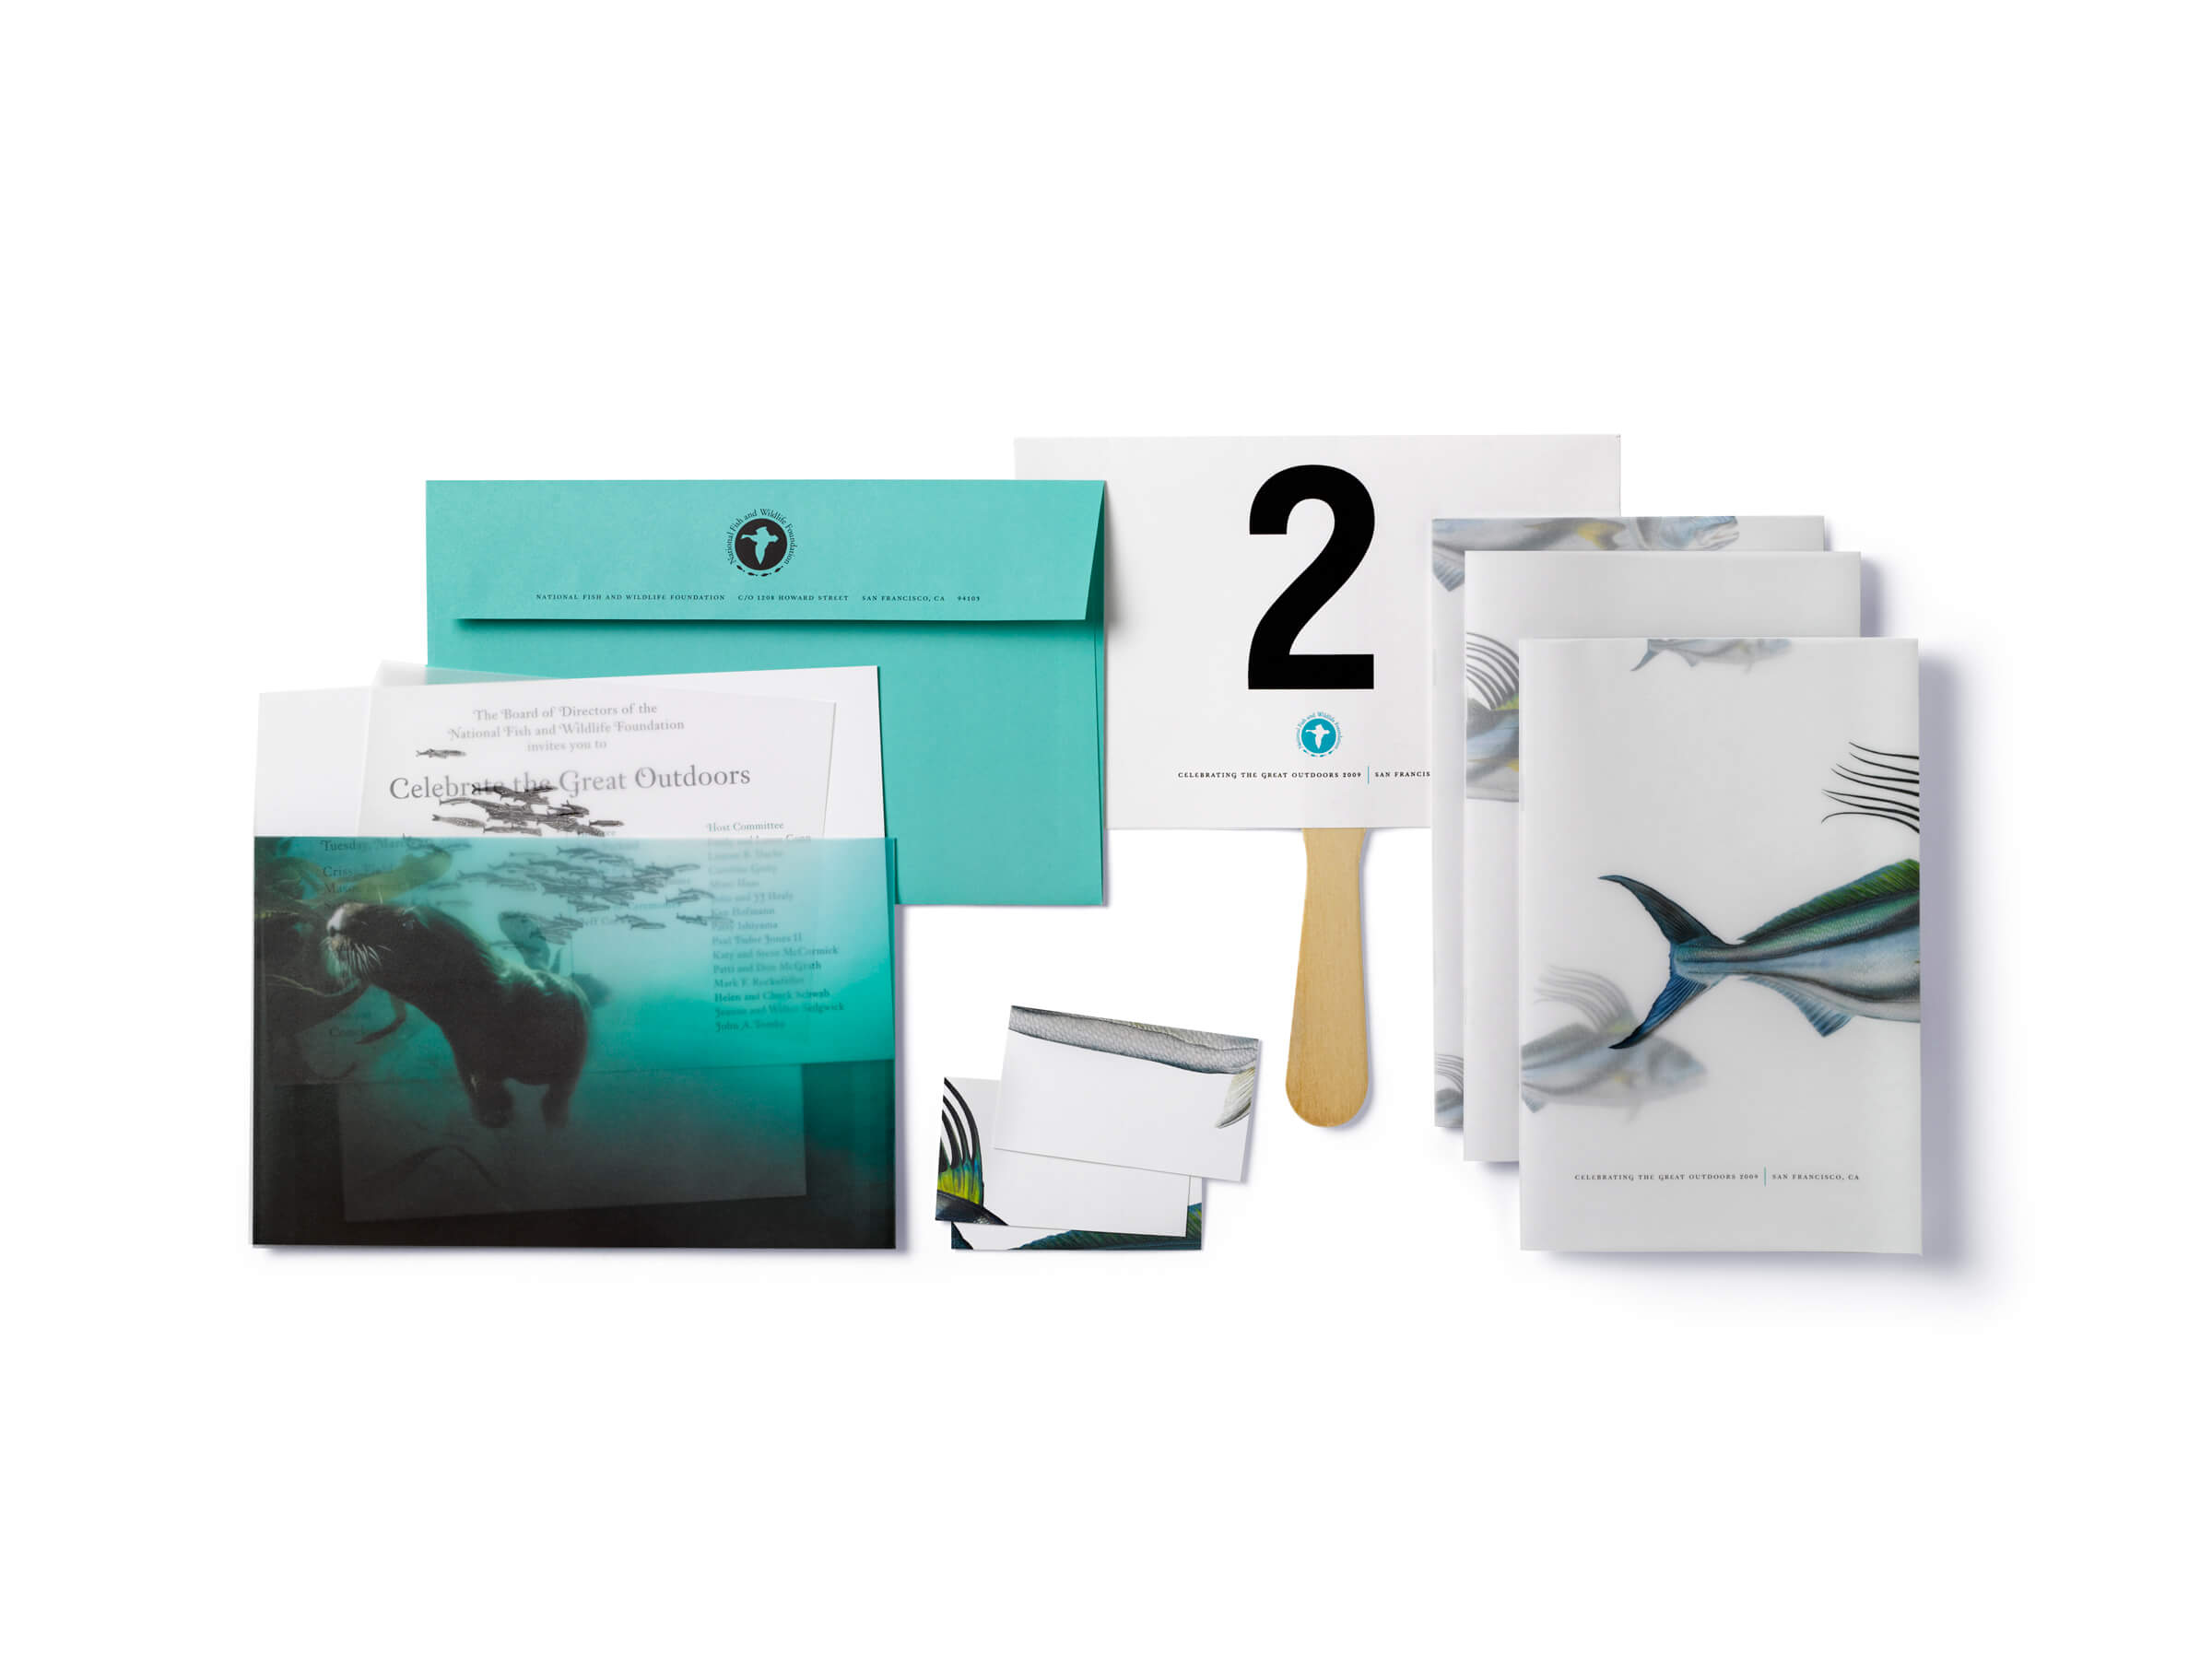 Sea creature themed program books, cards, invitation with teal envelope, and #2 paddle